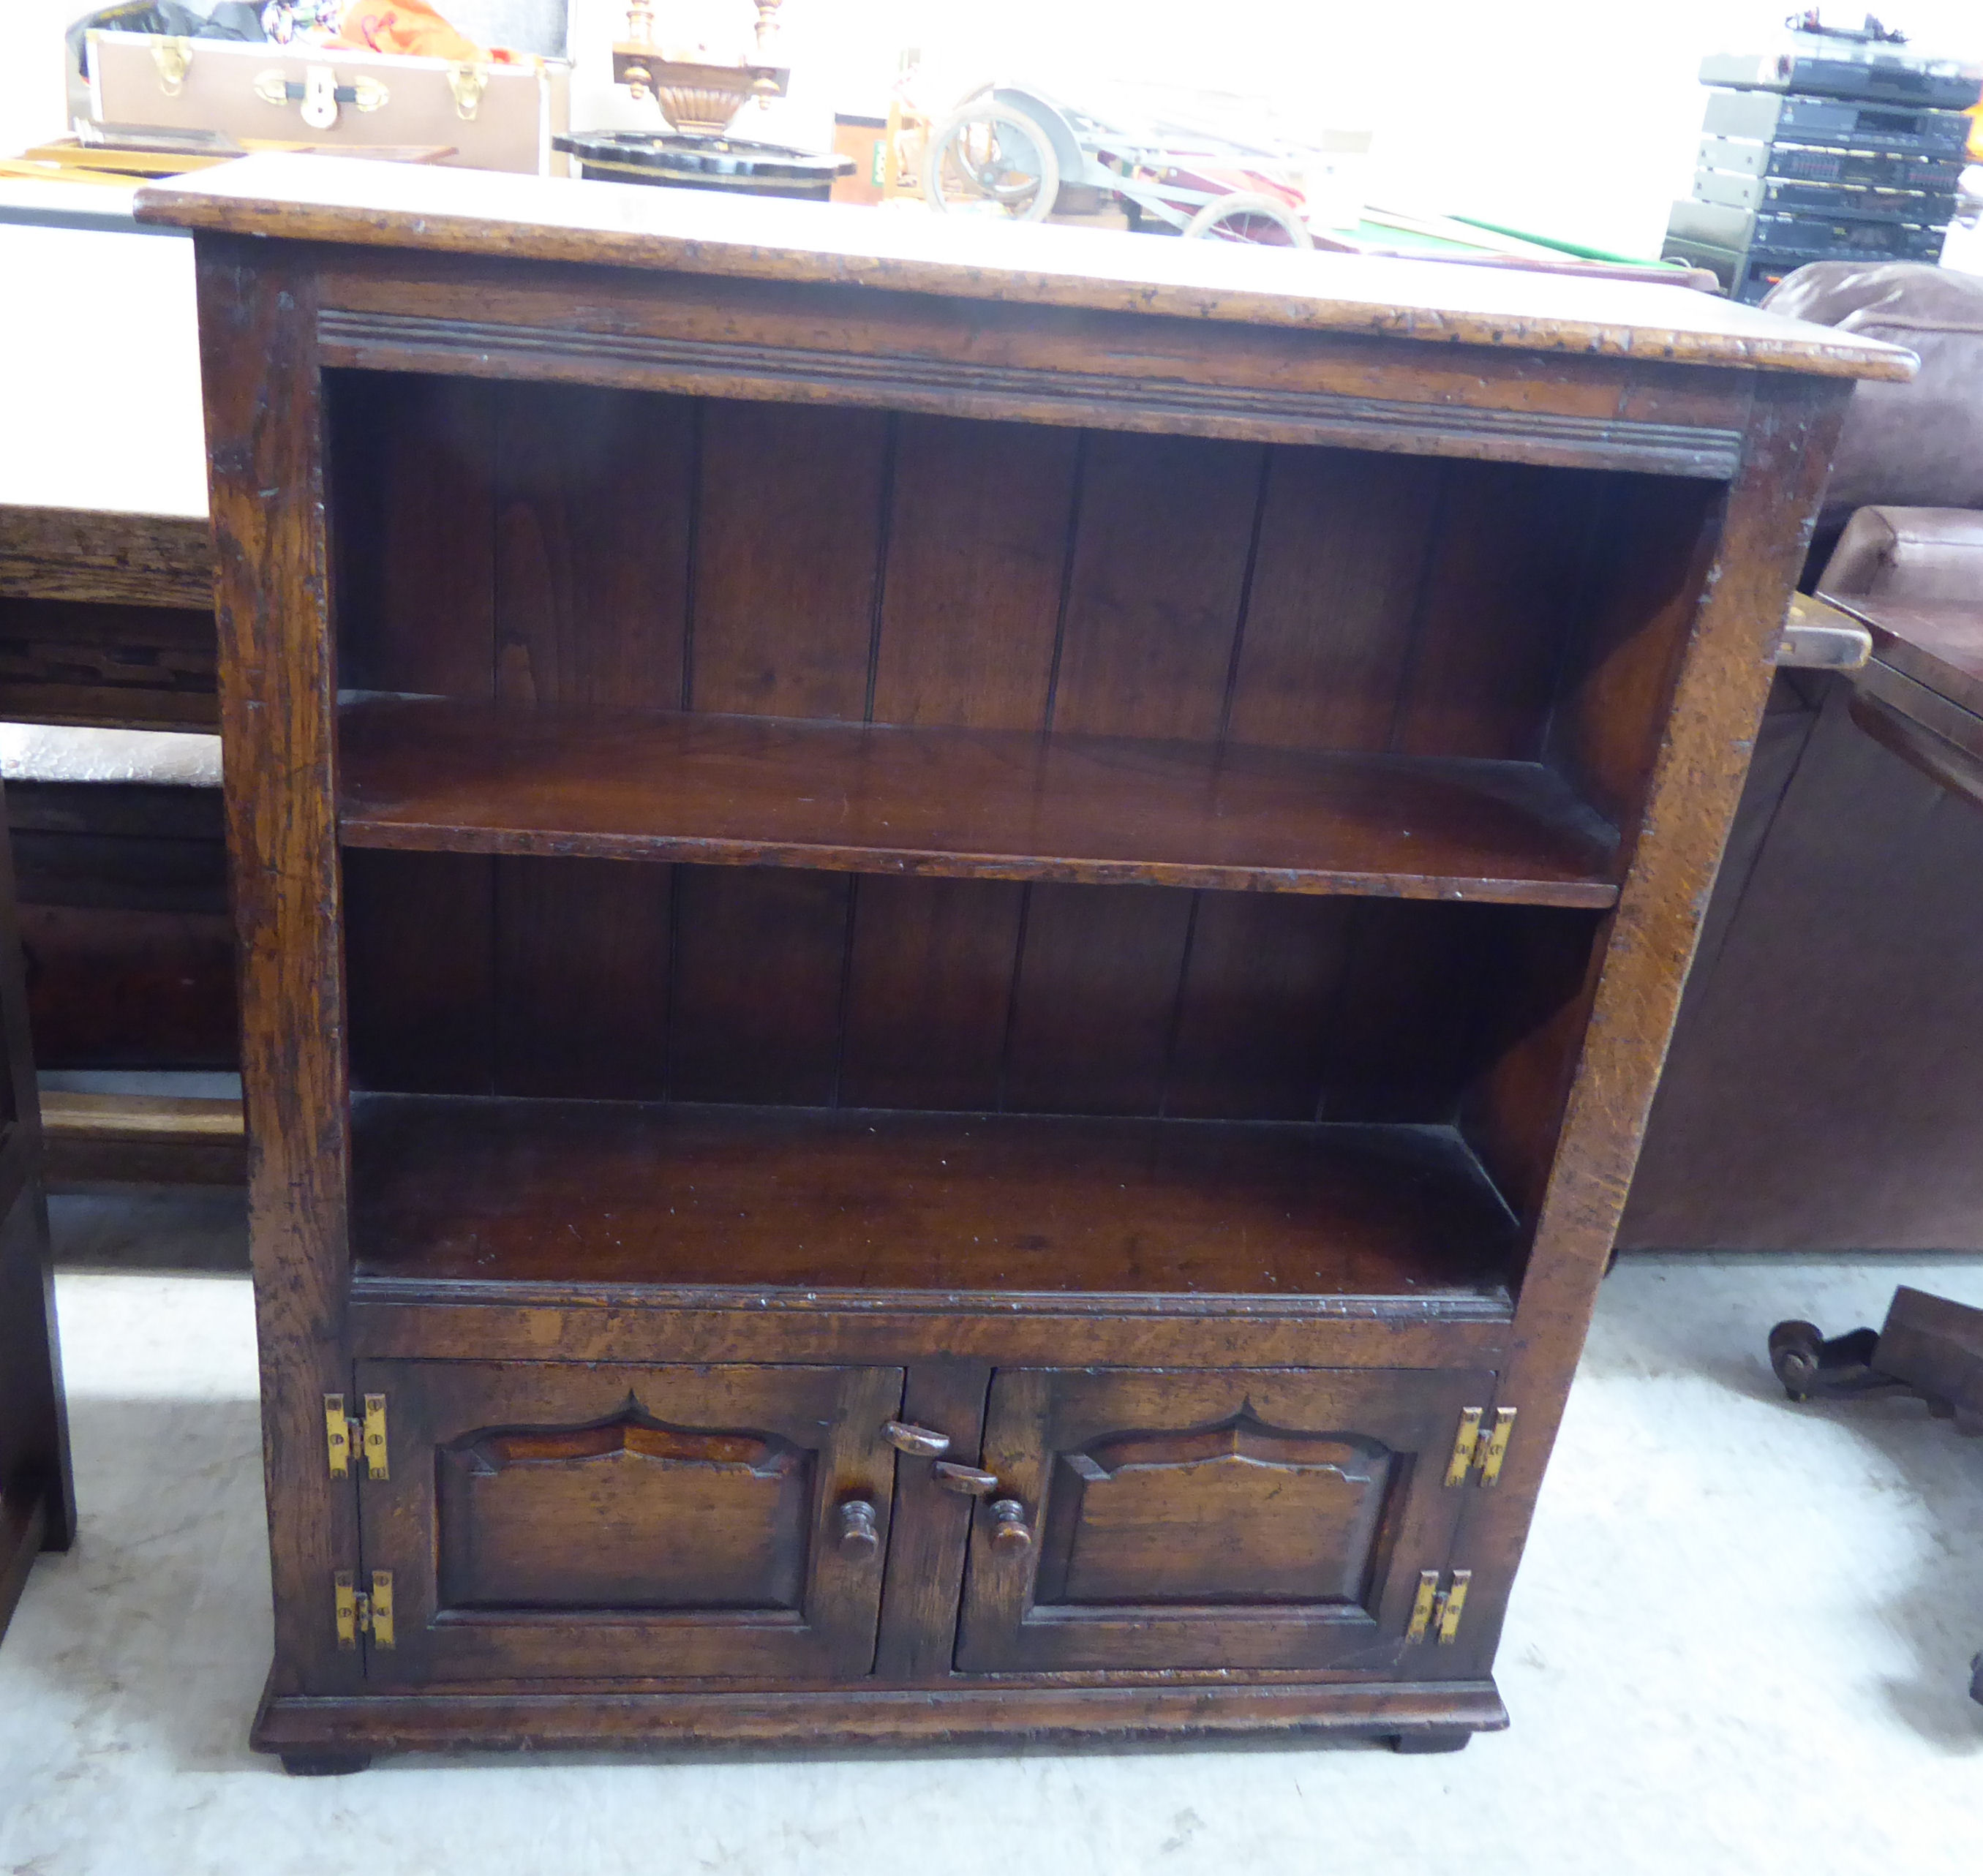 Lot 88 - A modern reproduction of an Old English style, stained oak bookcase with two open shelves,